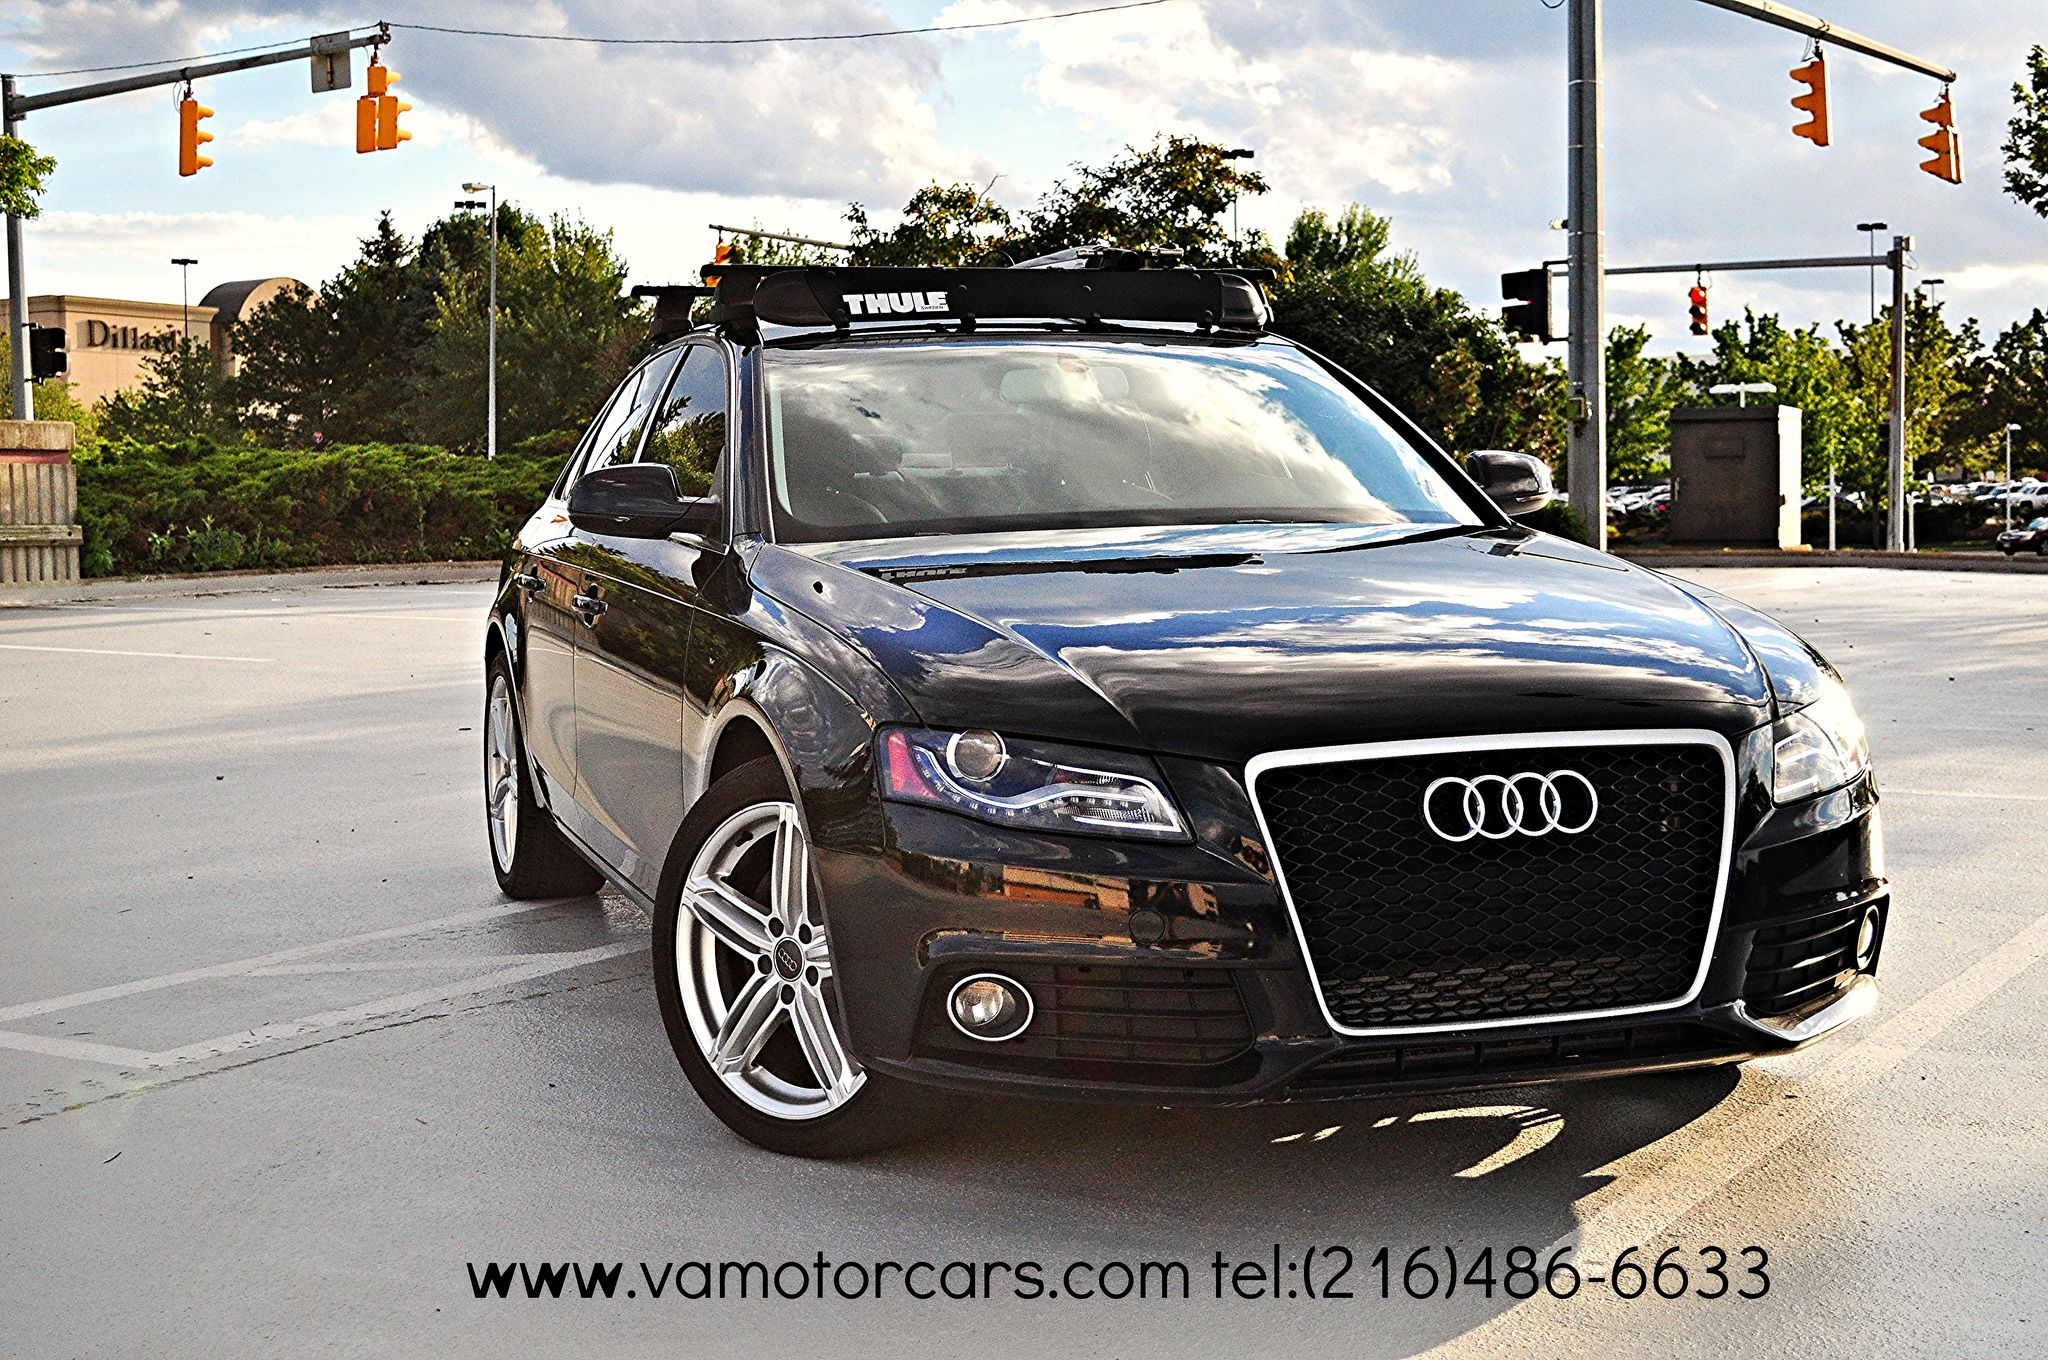 2010 Audi A4 With Thule Roof Rack RS4 Grill #audi #a4 # ...